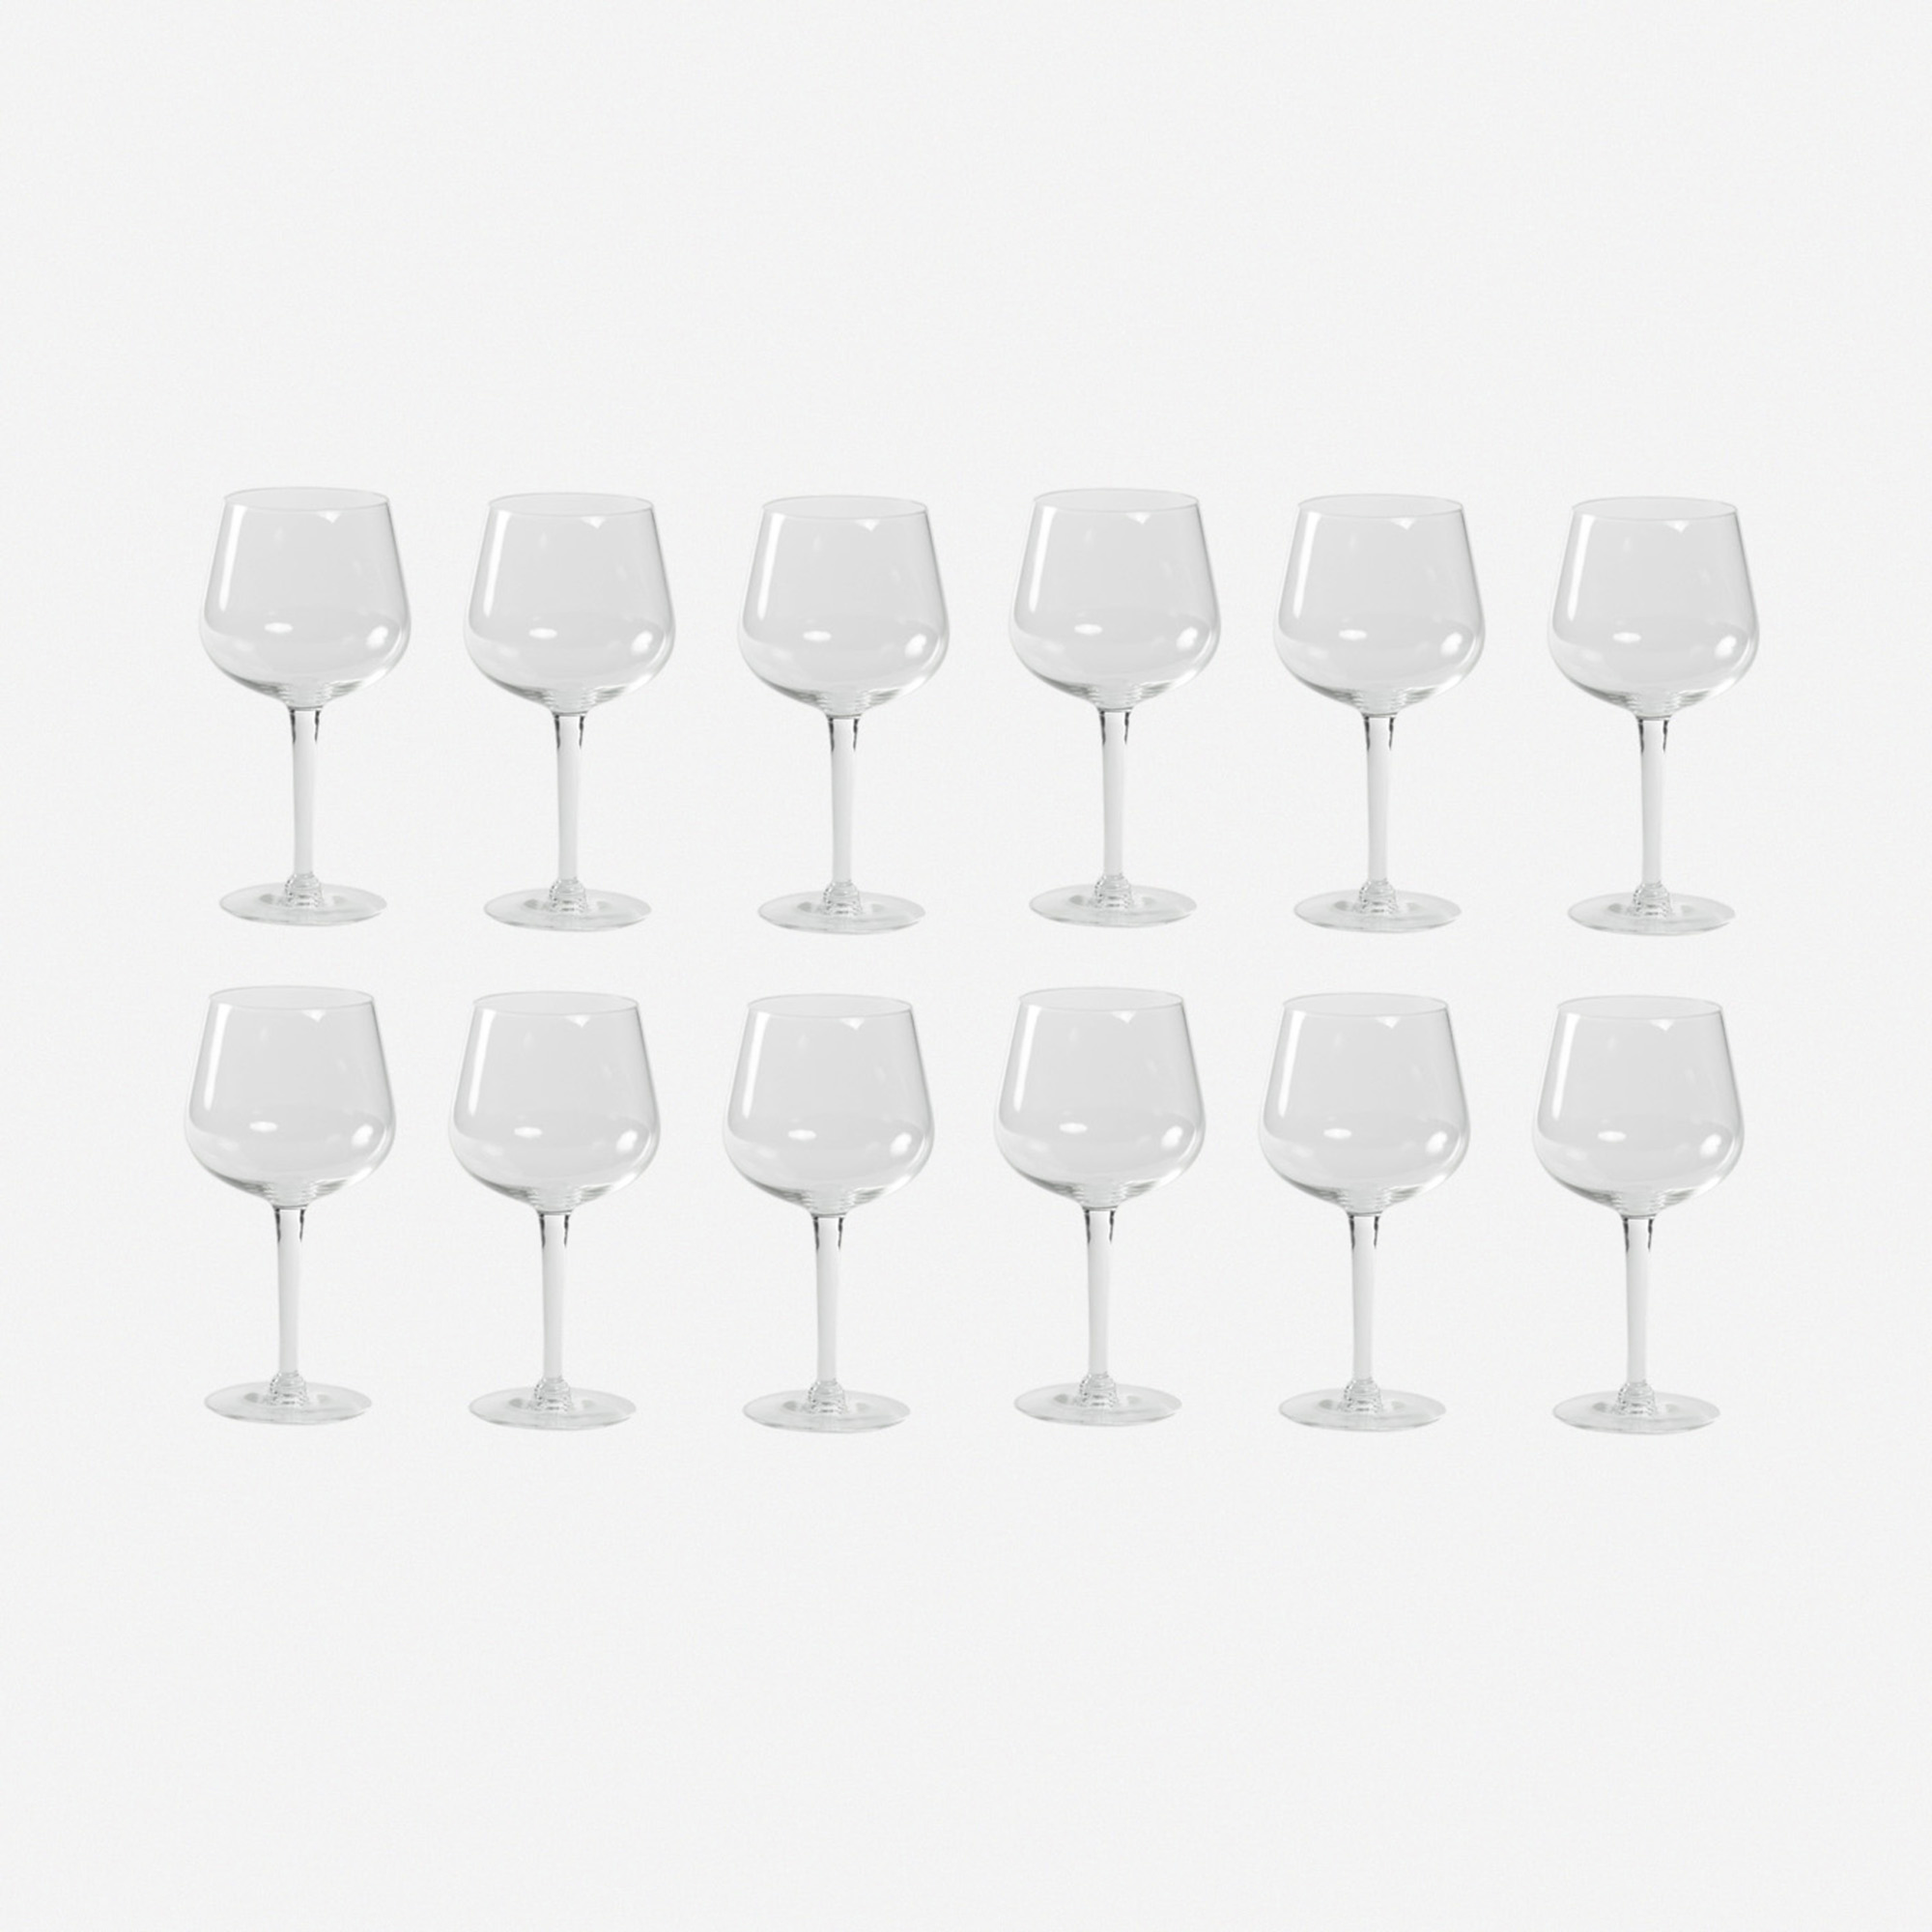 743: Garth and Ada Louise Huxtable / White Wine glasses from The Four Seasons, set of twelve (1 of 1)